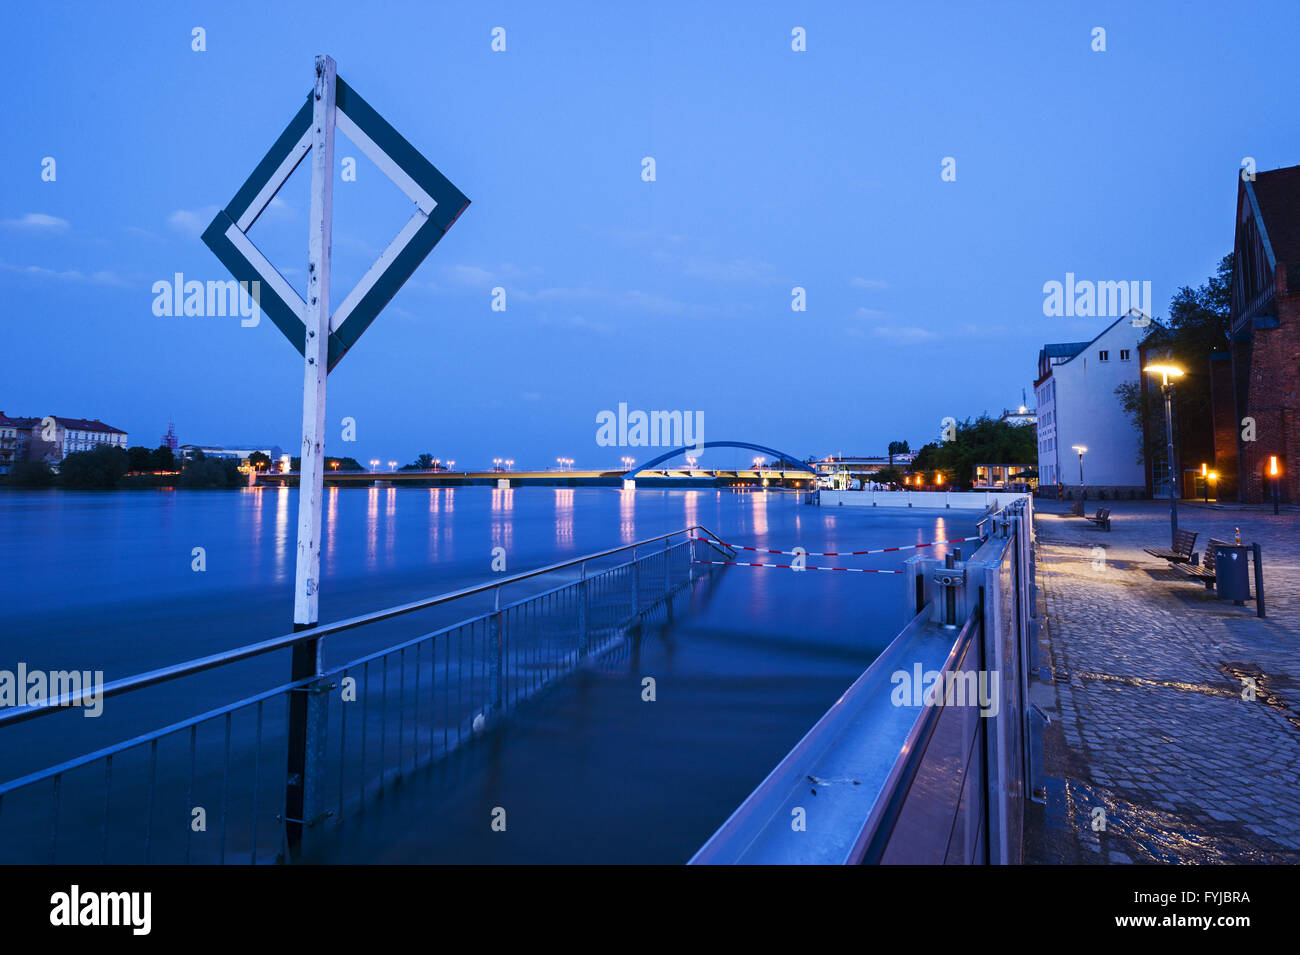 Flooded promenade at River Oder, Frankfurt Oder - Stock Image